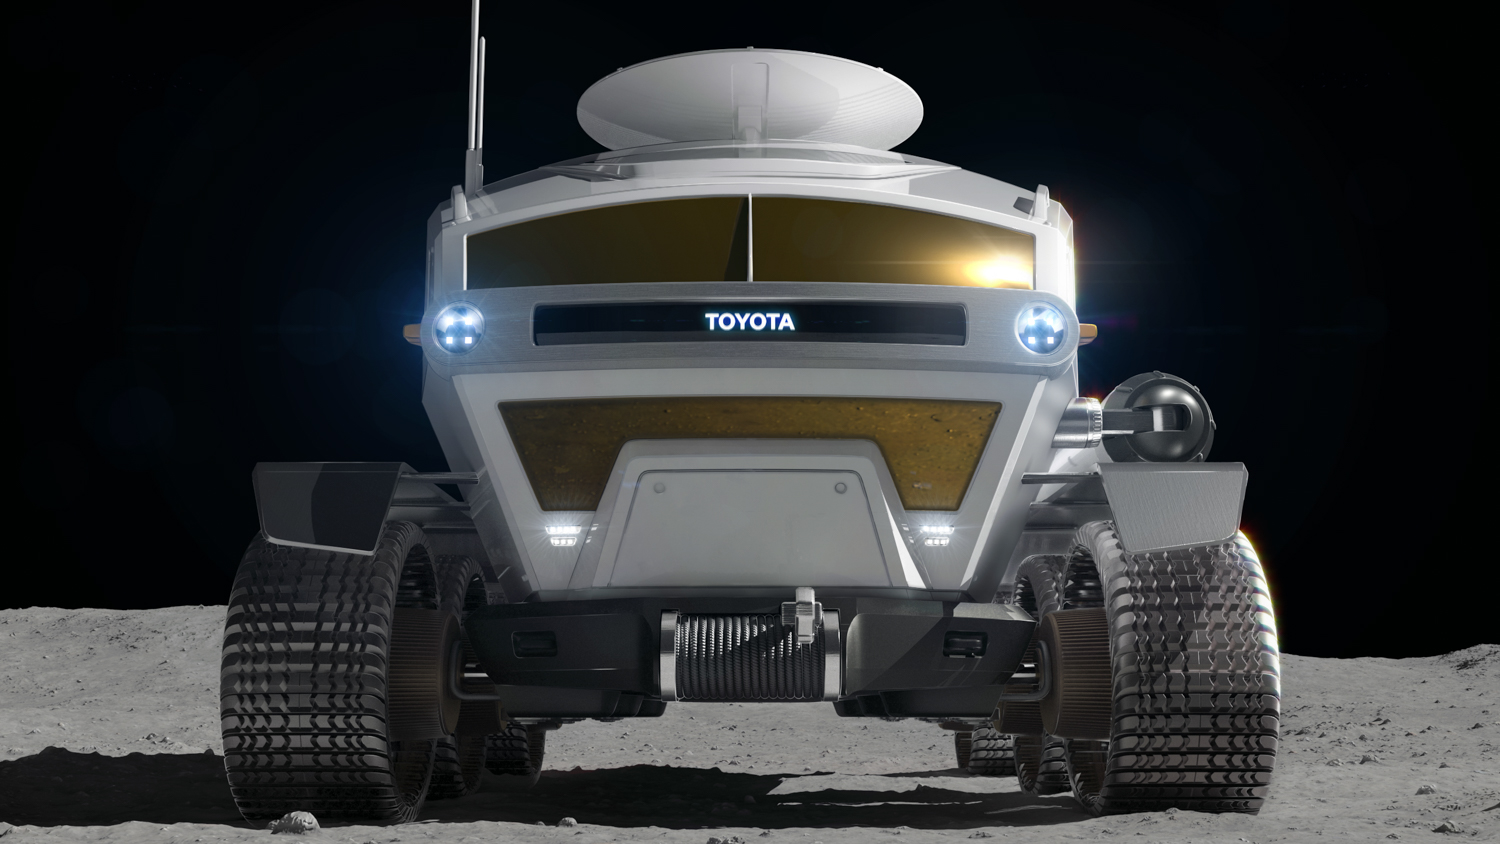 Toyota Pressurized Moon Rover concept front